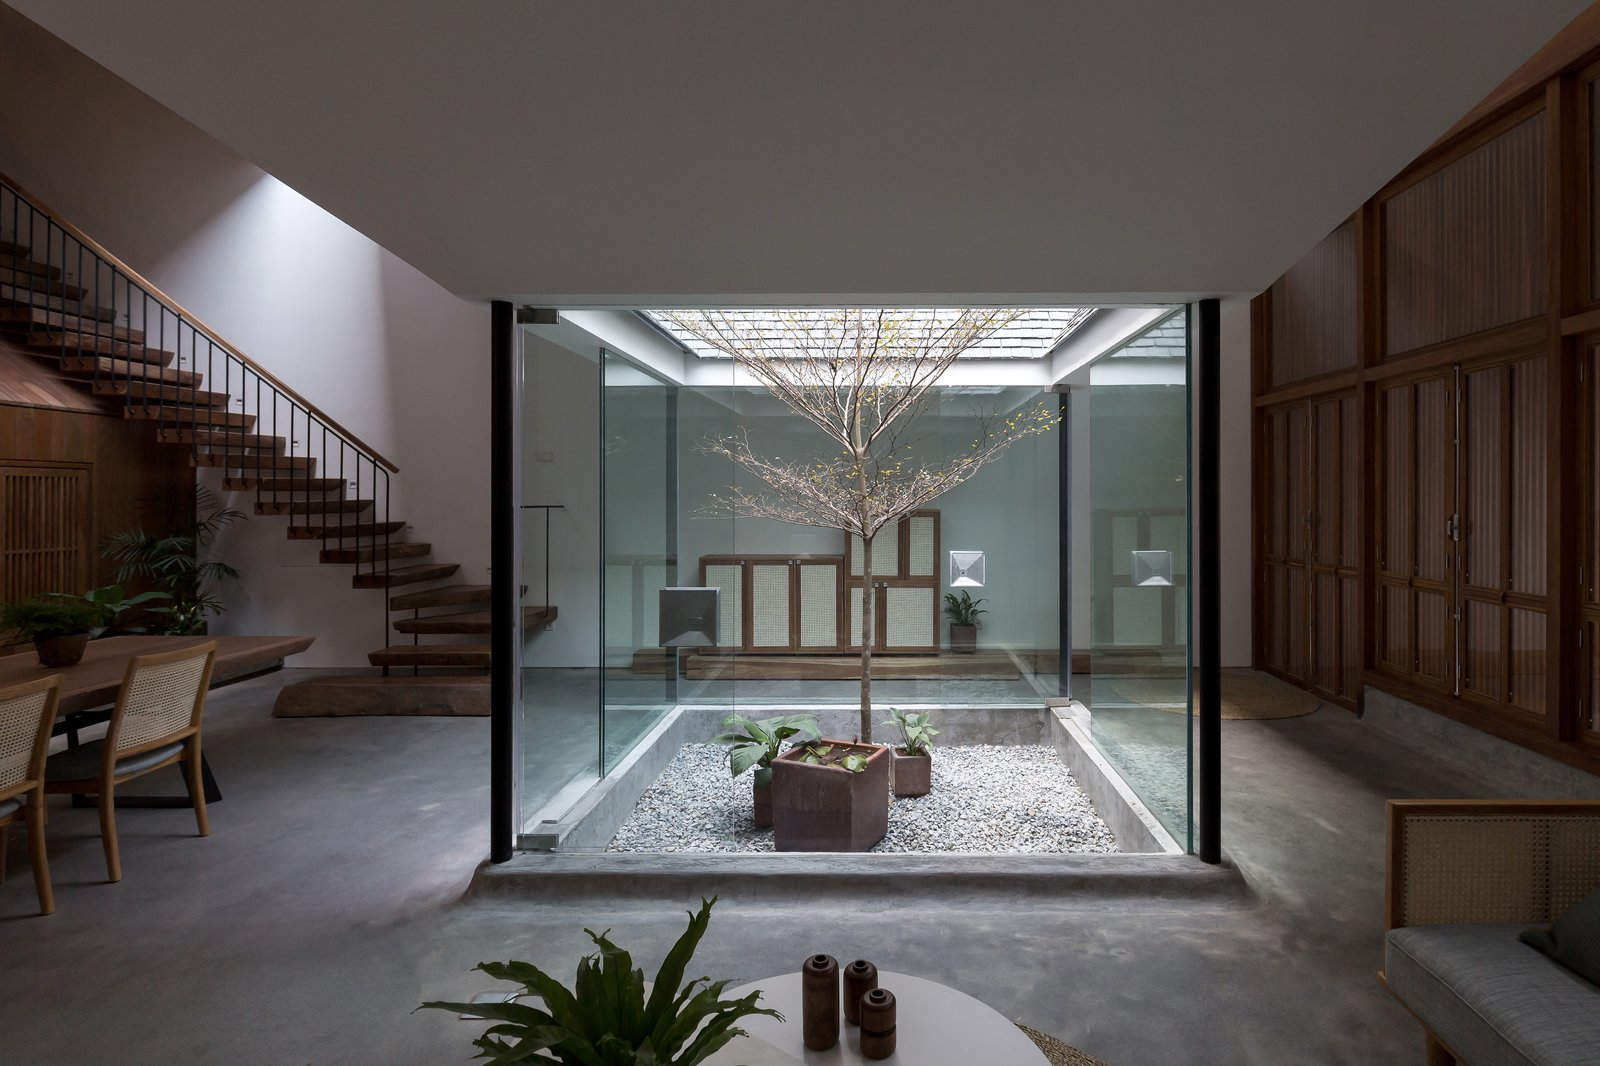 Outdoor, Gardens, Hardscapes, Raised Planters, Trees, and Garden Passing through a patio and entranceway, one enters an open-plan living and dining area with ceilings that dip towards the four glass walls of the small interior garden.  Photo 8 of 13 in A Vietnamese Abode Draws In Light With a Glass Atrium